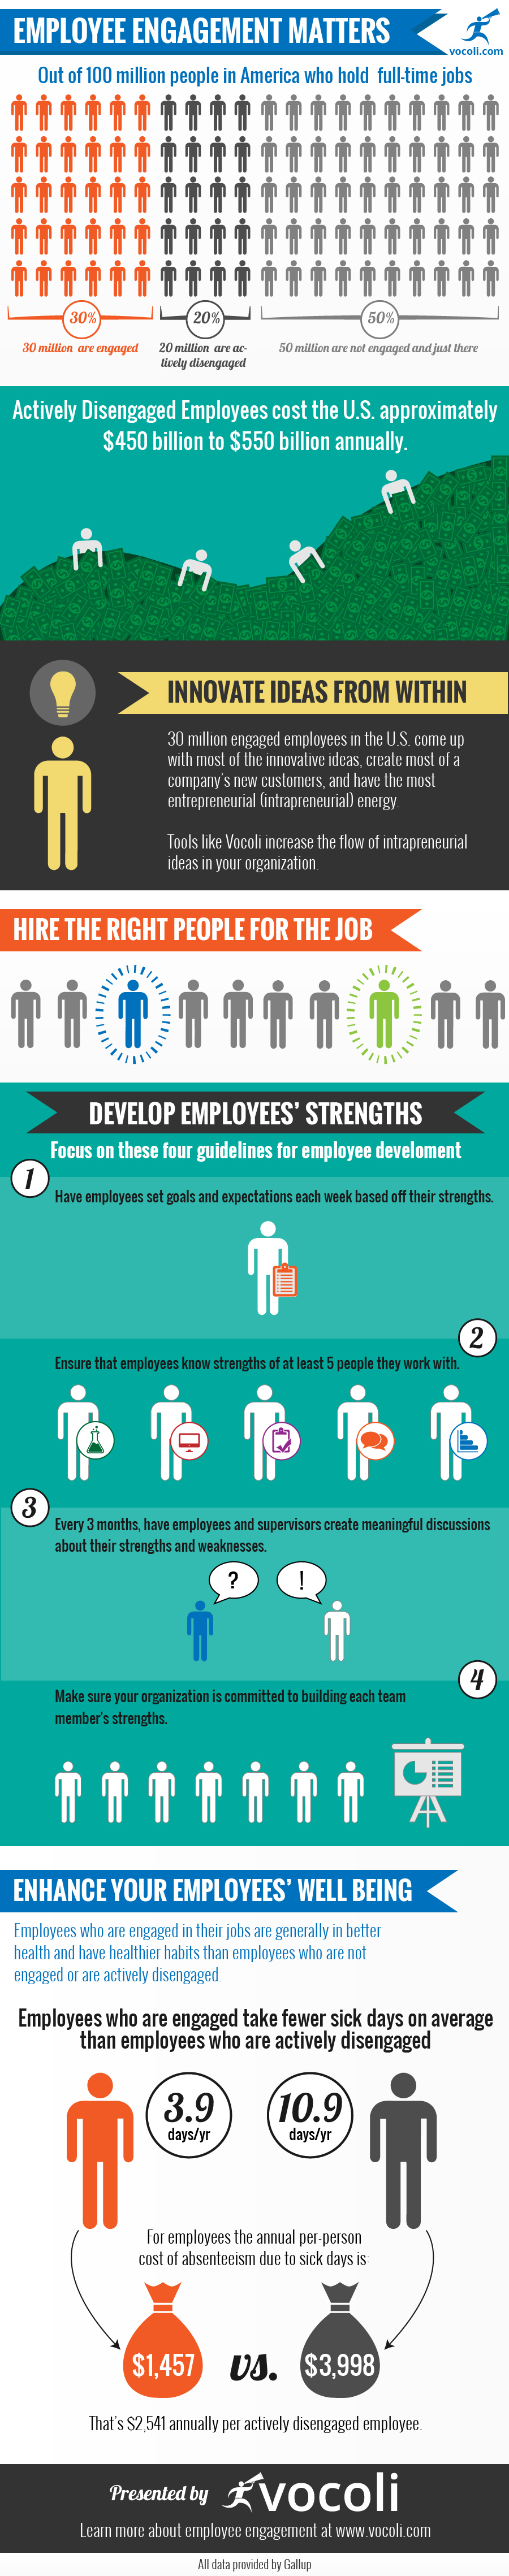 Employee Engagement Matters